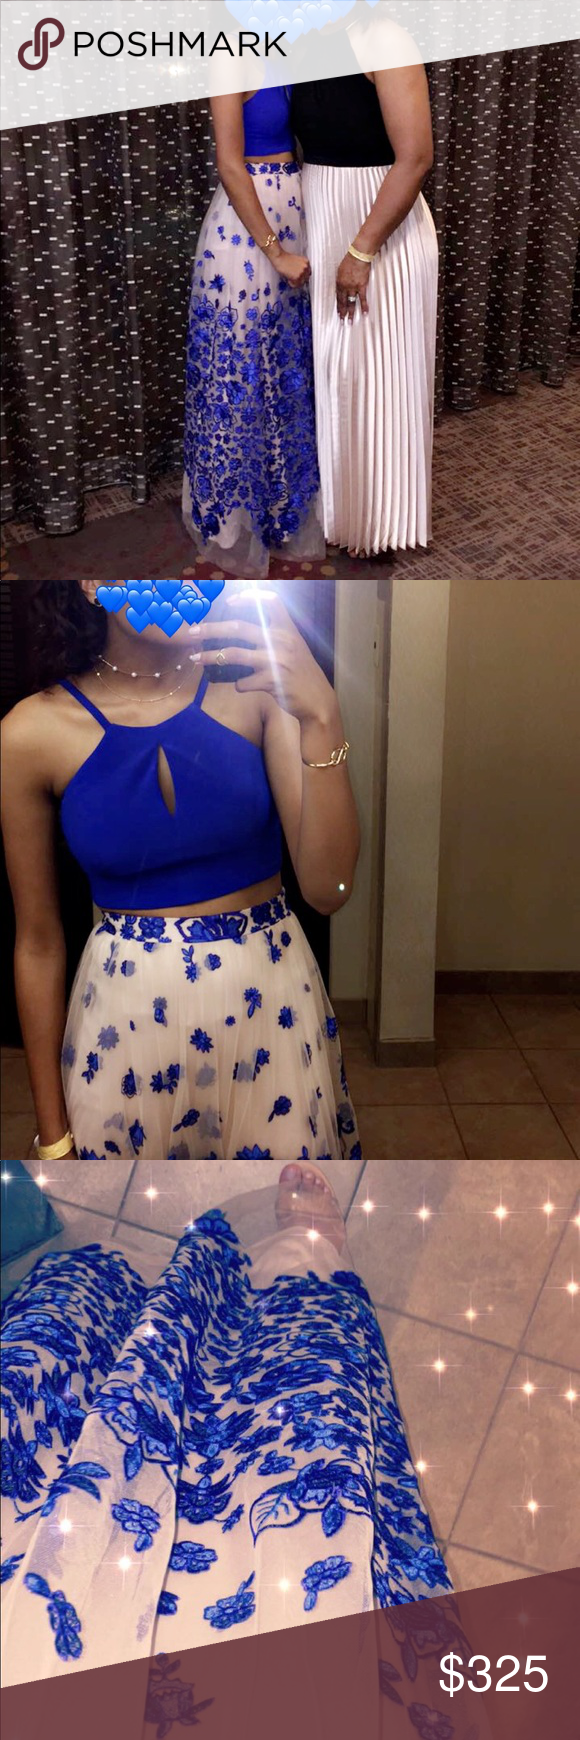 Royal blue floral piece prom dress dillards royal blue and prom